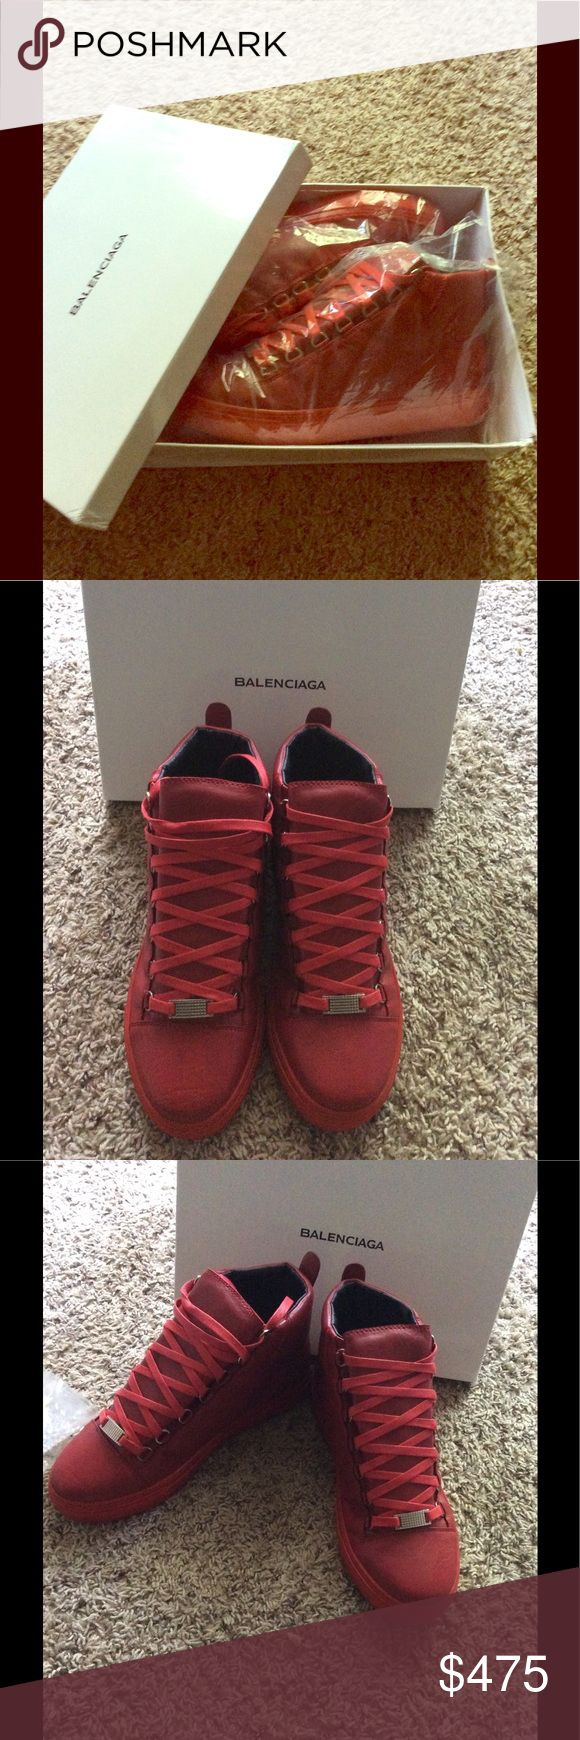 Balenciaga Arena High Top Size U.S.8/UK7/EUR41 Men's customs Solid RED DeadStock Item Never used  Box Included Balenciaga Shoes Sneakers